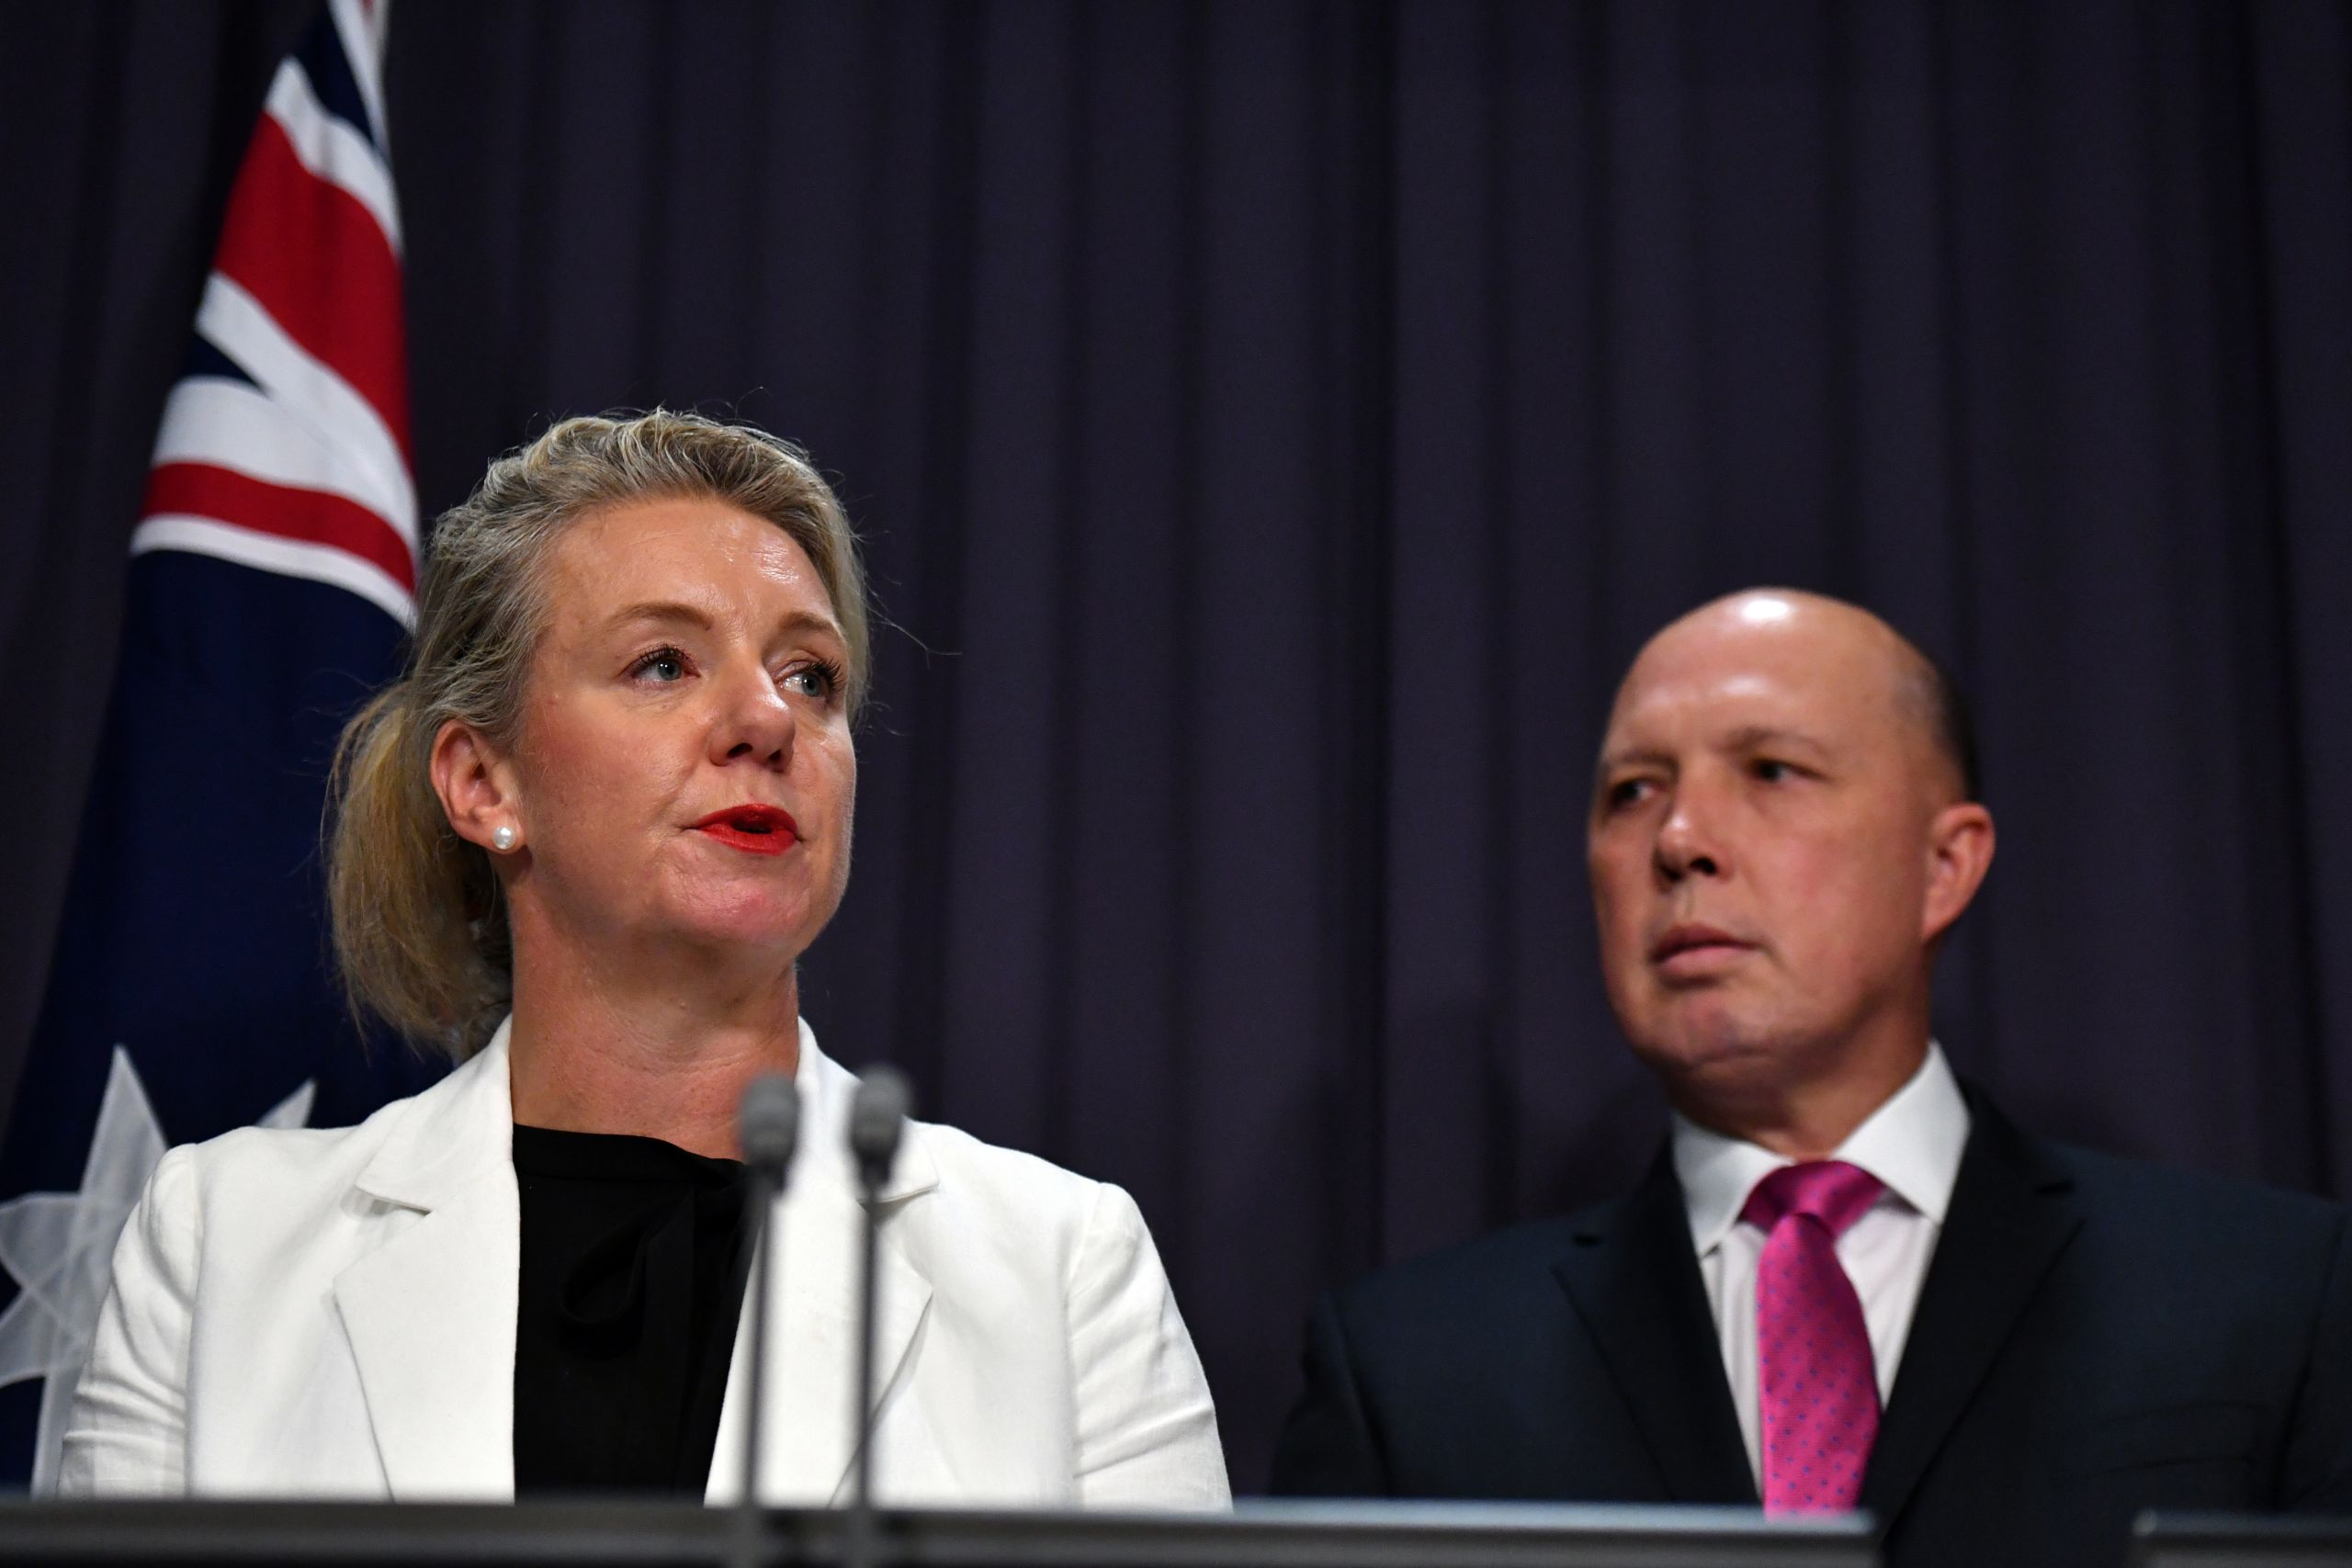 Bridget McKenzie and Peter Dutton